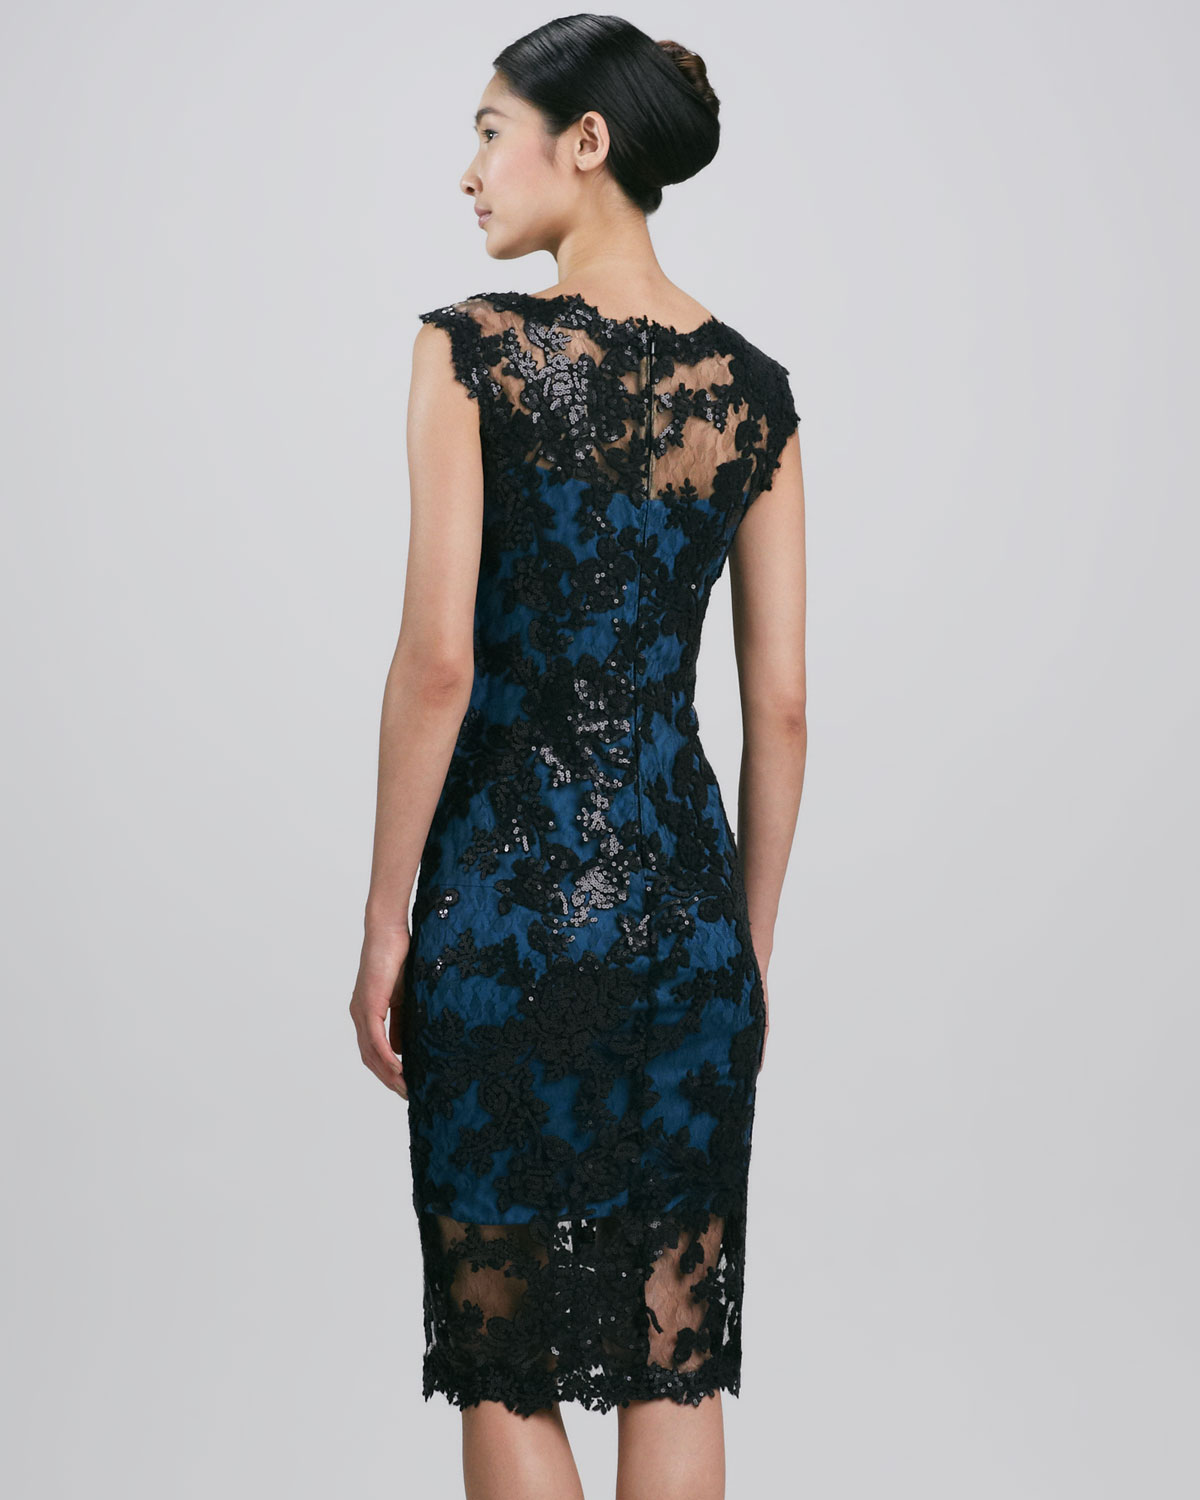 Tadashi shoji Sleeveless Scalloped Lace Cocktail Dress in Blue | Lyst